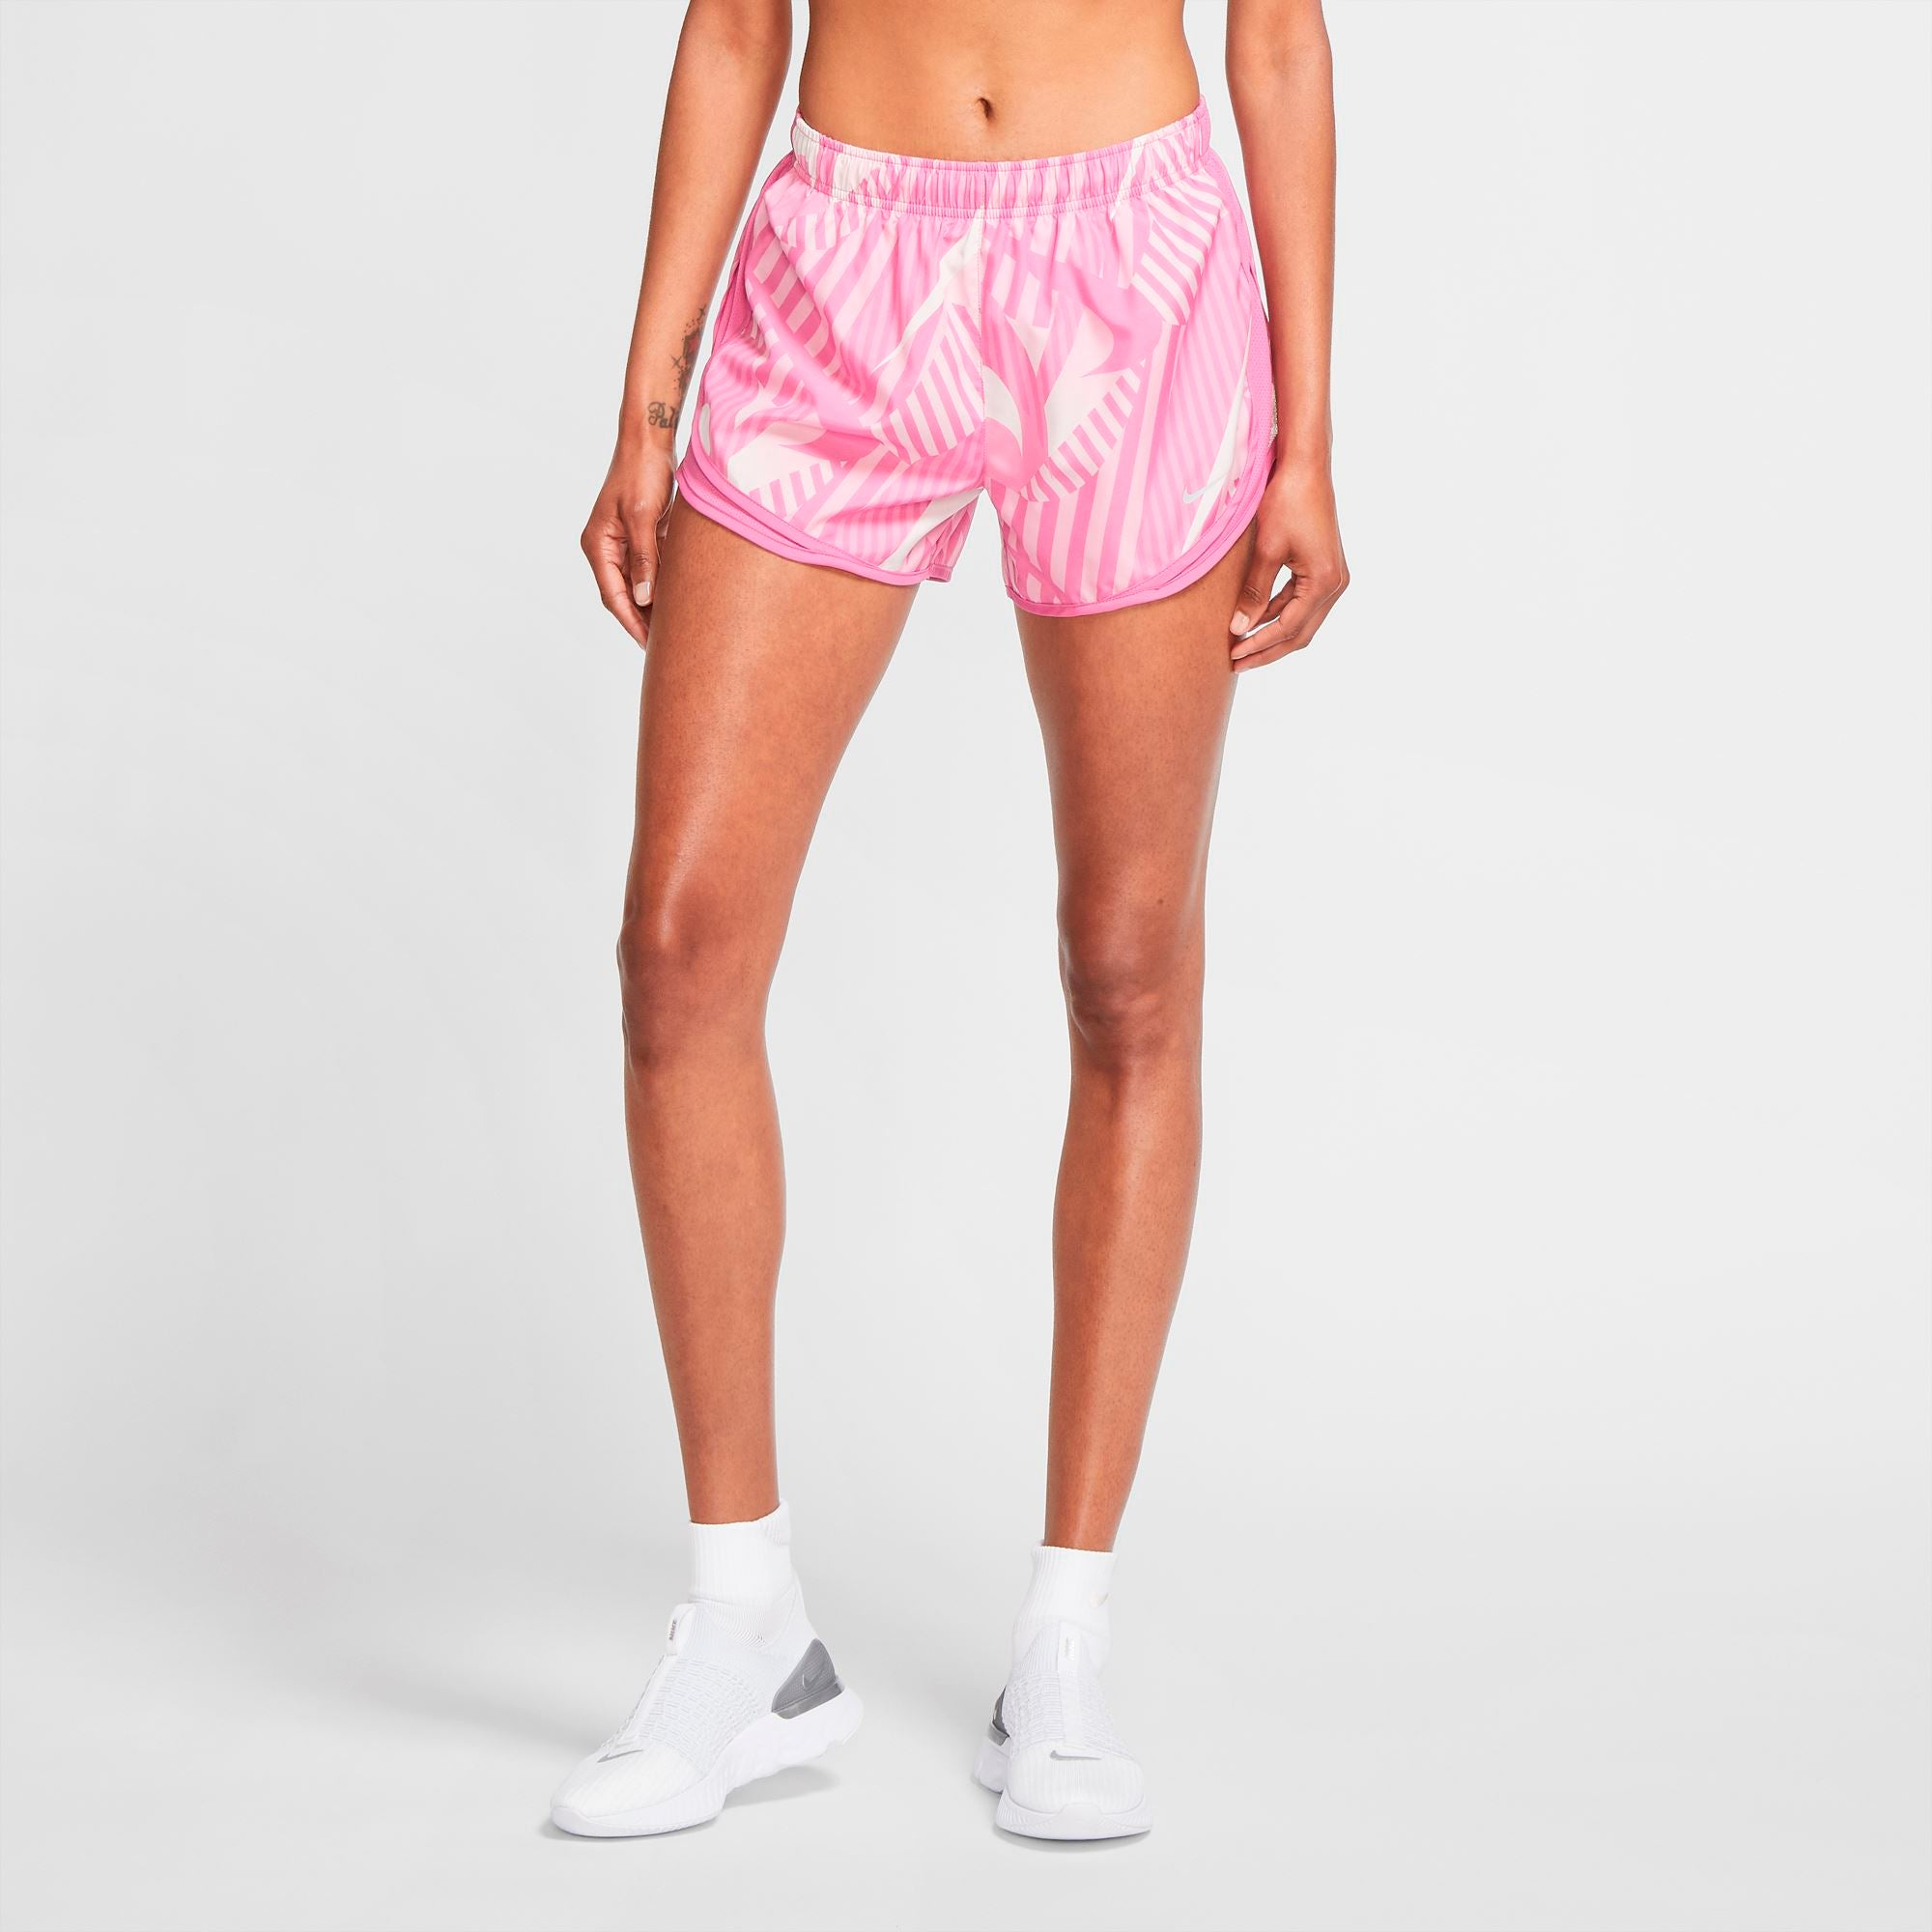 Nike Womens Tempo Printed Shorts - Cosmic Fuchsia/Wolf Grey SP-ApparelShorts-Womens Nike